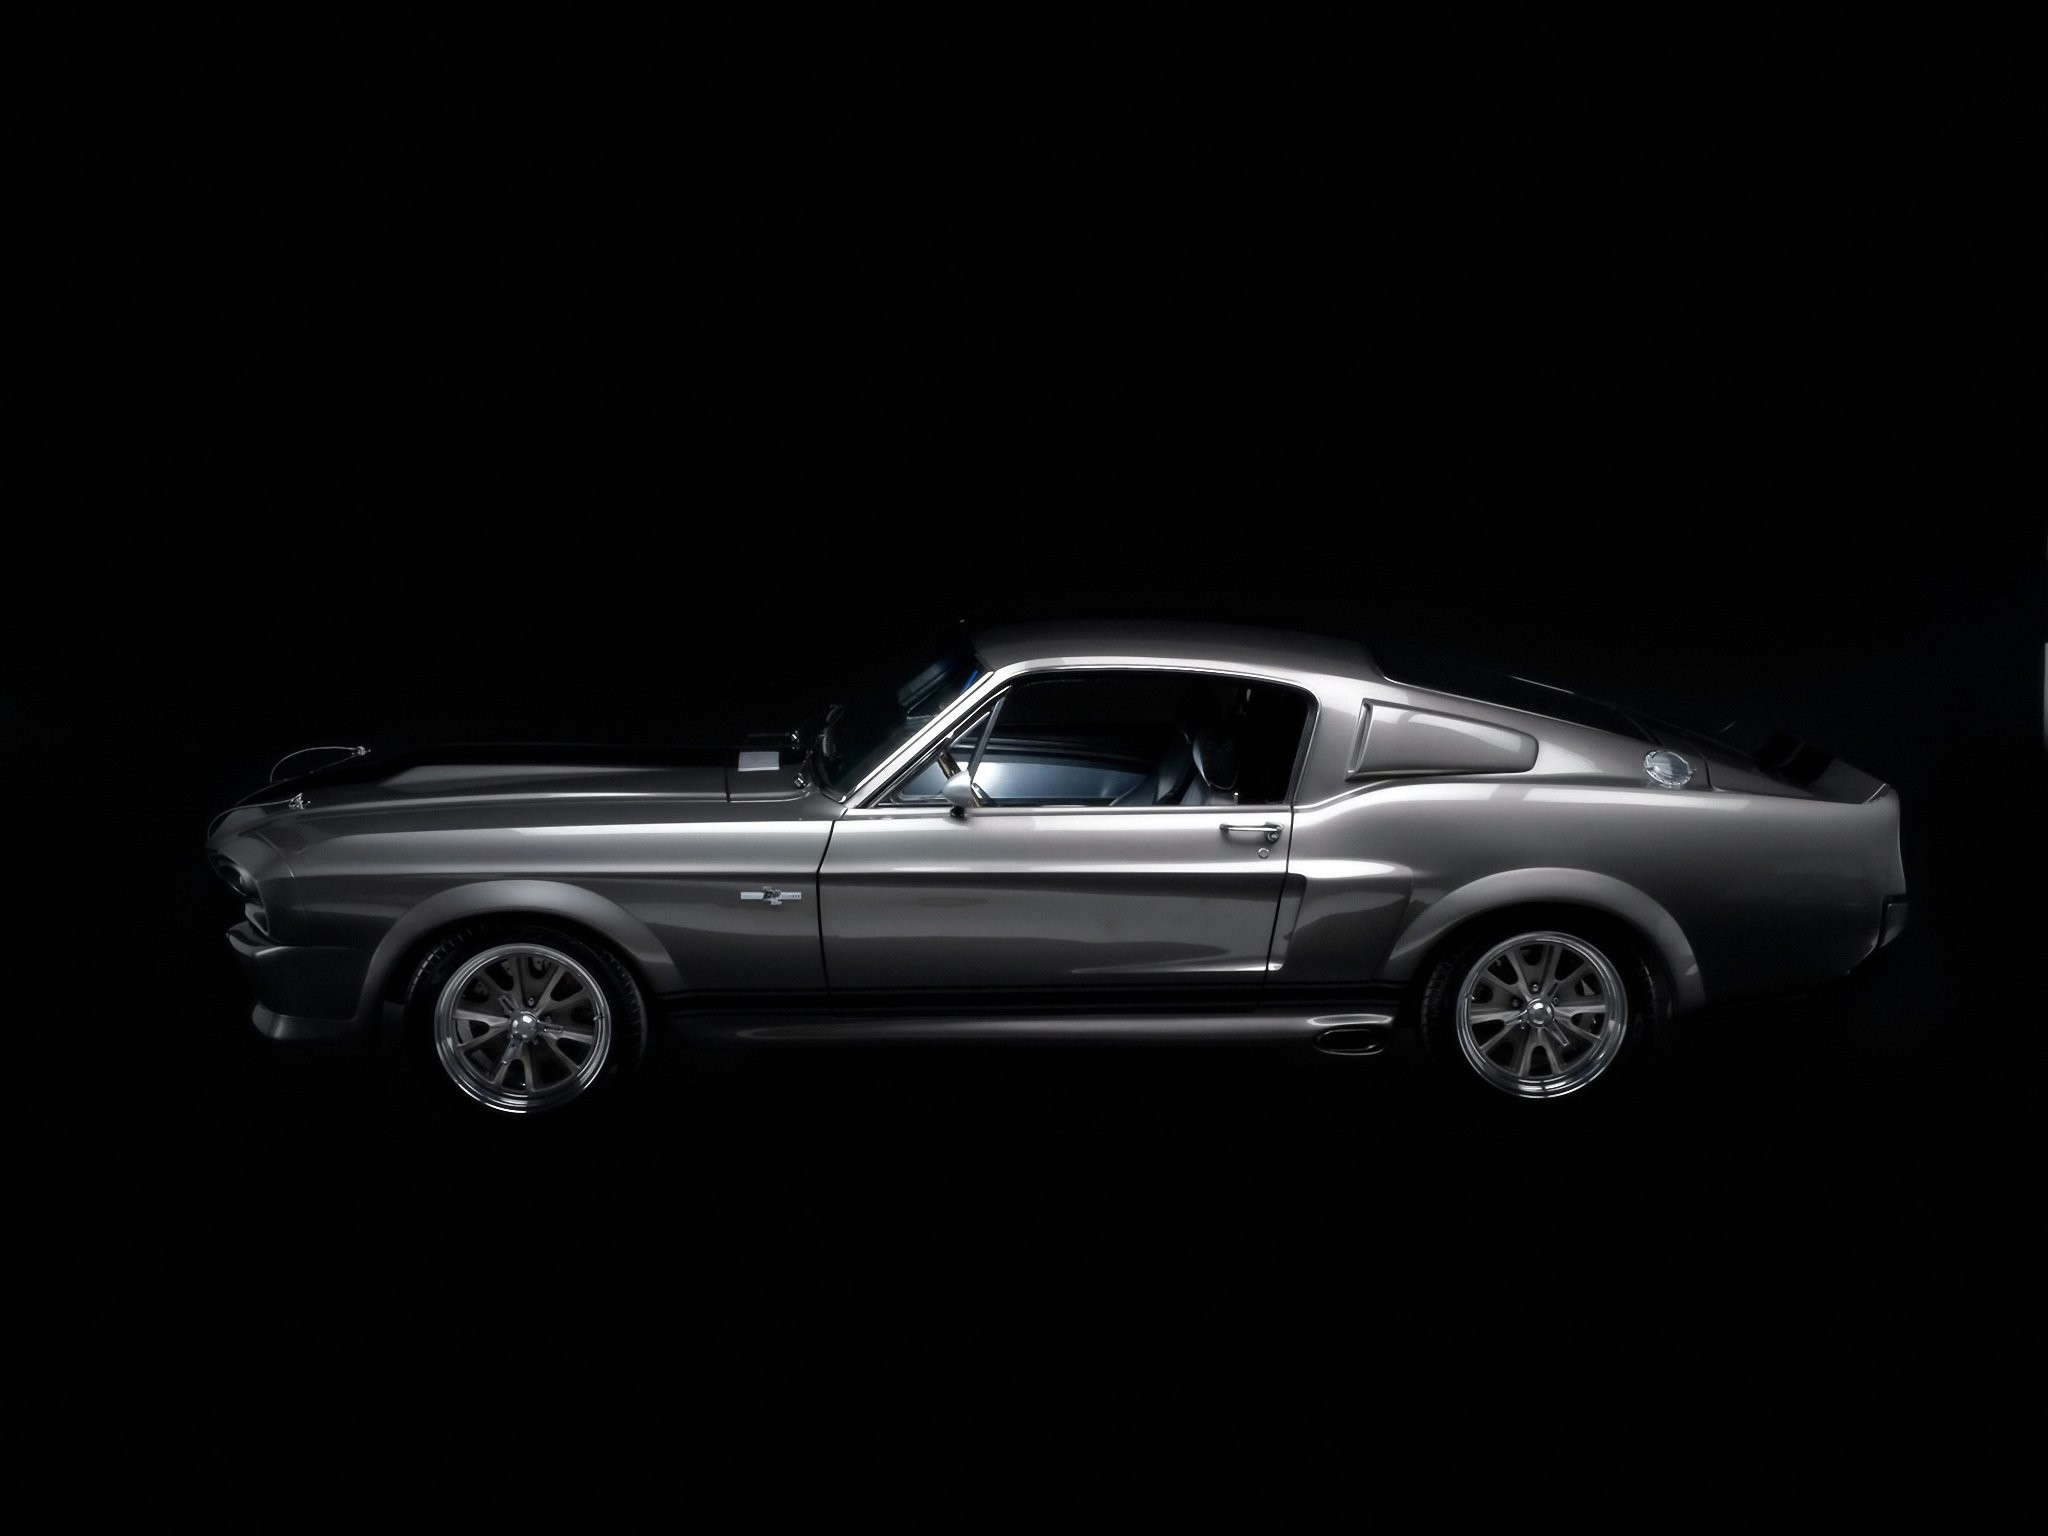 1967 Ford Mustang Shelby Cobra GT500 Eleanor hot rod rods muscle classic rw  wallpaper | | 249725 | WallpaperUP